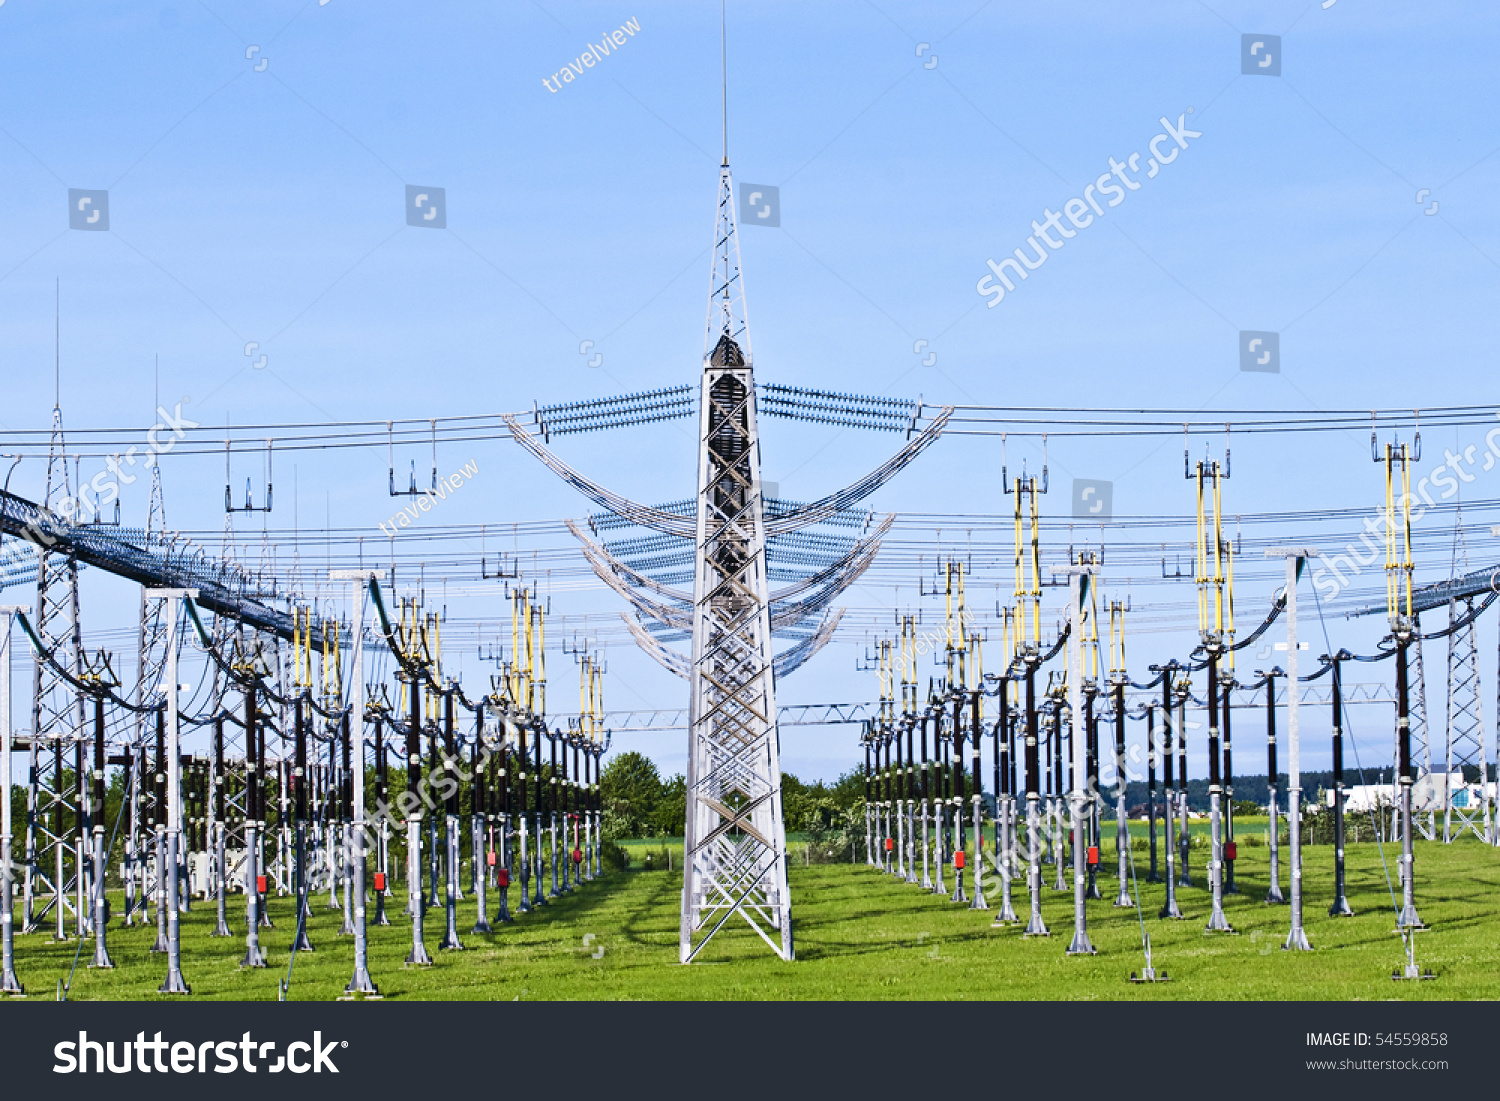 electrical power plant in beautiful colorful meadow stock photo, wiring diagram